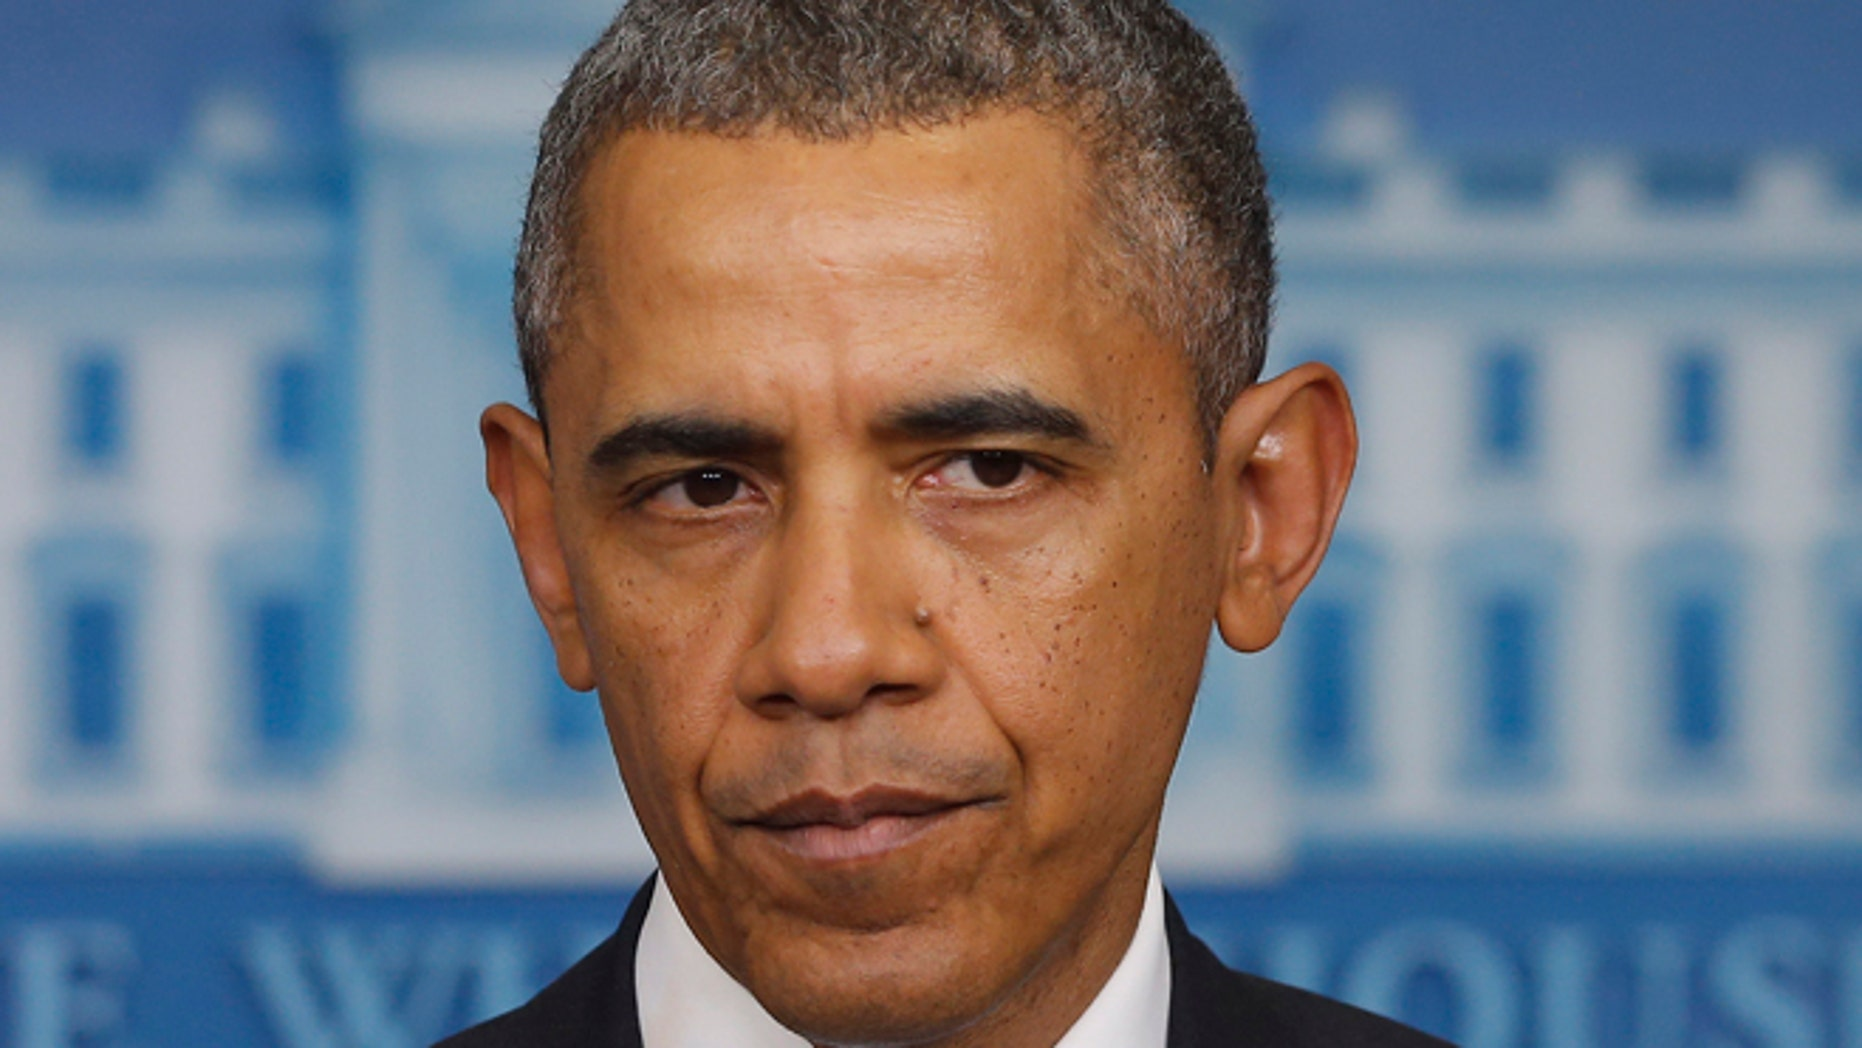 Feb. 28, 2014: President Barack Obama speaks about Ukraine in the James Brady Press Briefing Room at the White House in Washington.